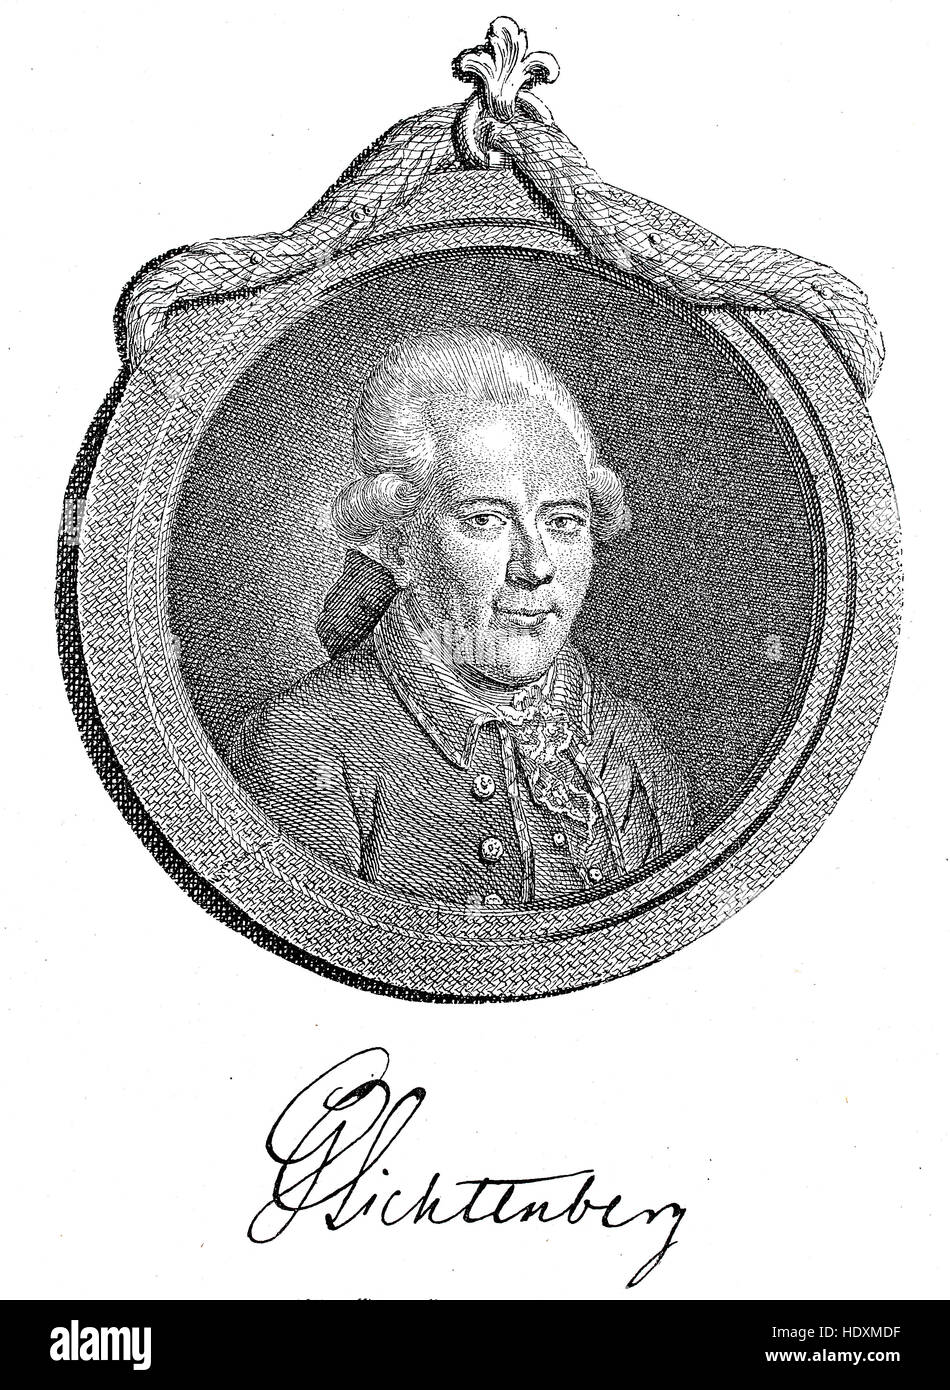 Georg Christoph Lichtenberg, 1742-1799, a mathematician and the first German professor of experimental physics in - Stock Image